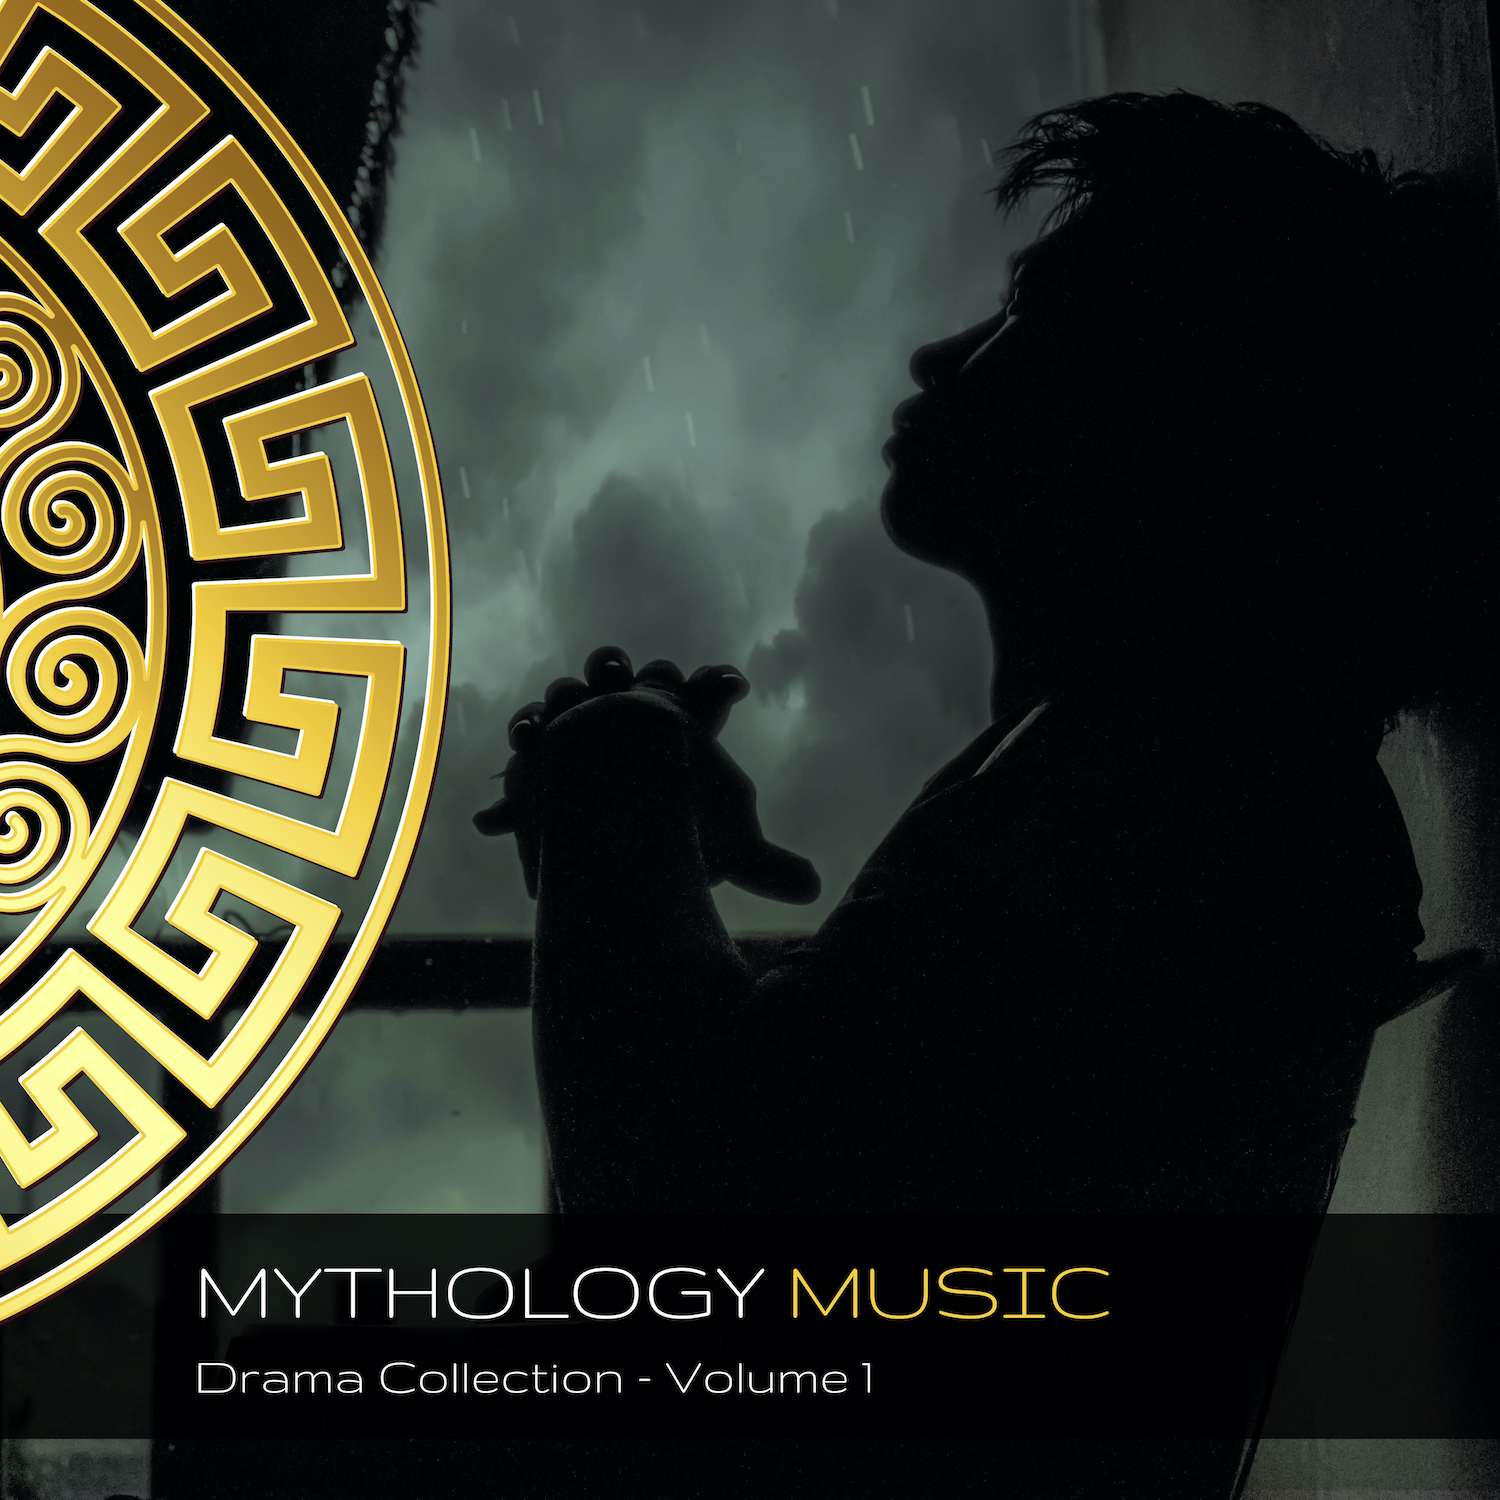 Mythology Music - Drama Collection